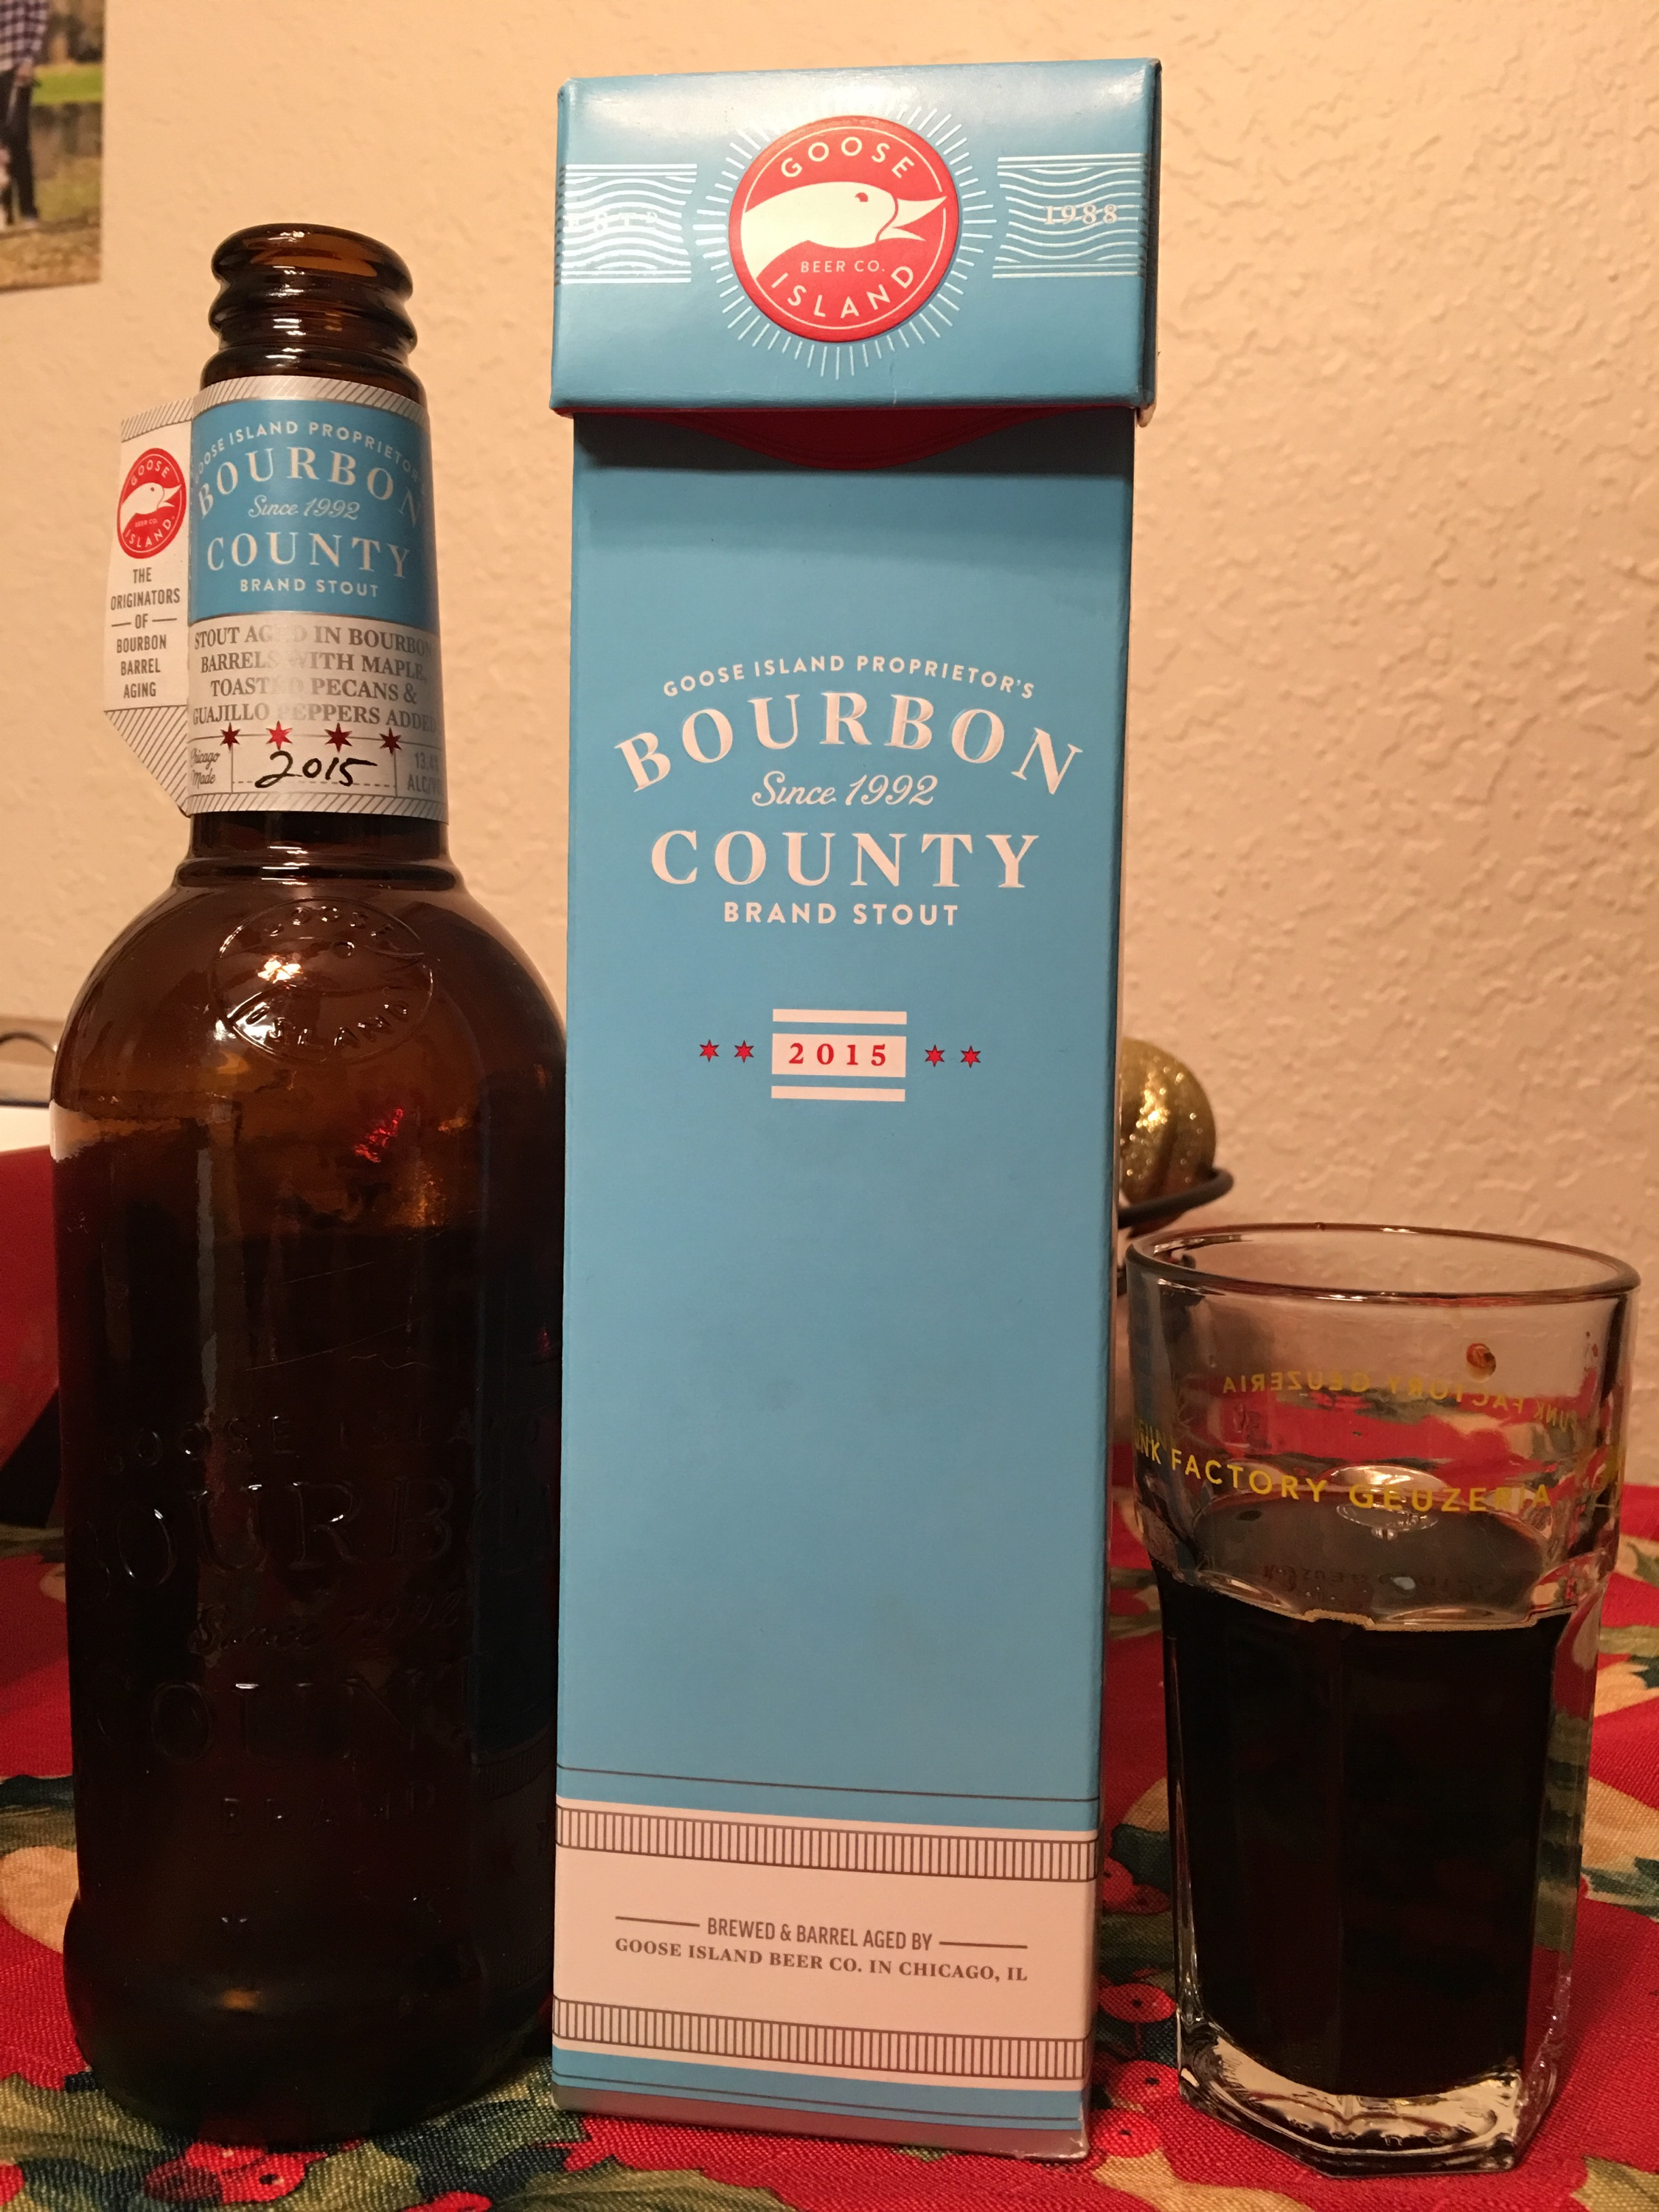 Bourbon County Backyard Rye 2015 bourbon county rare, propreshittors, coffee, and regal rye